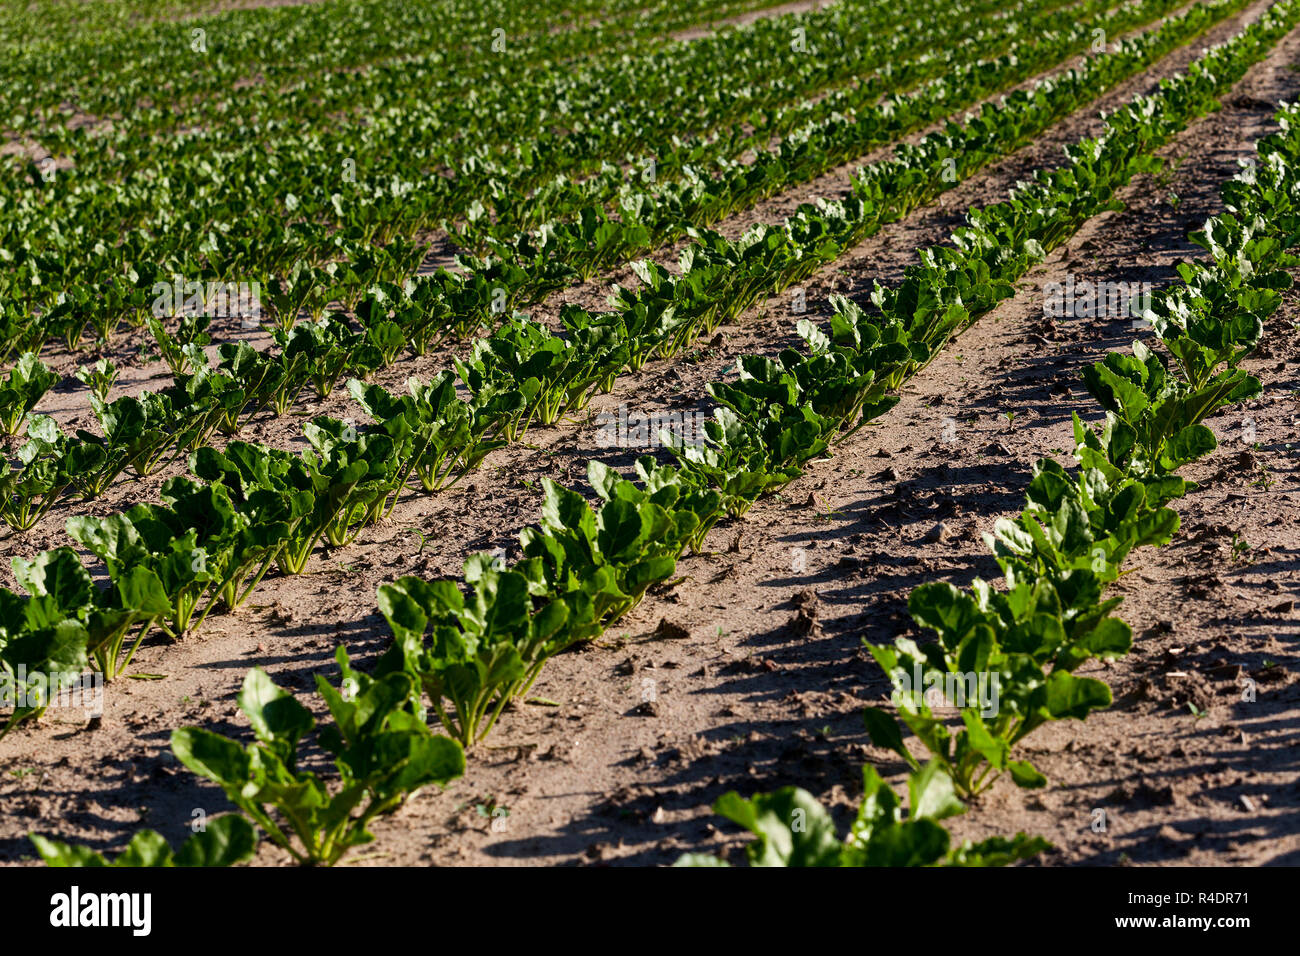 agricultural field with beetroot - Stock Image